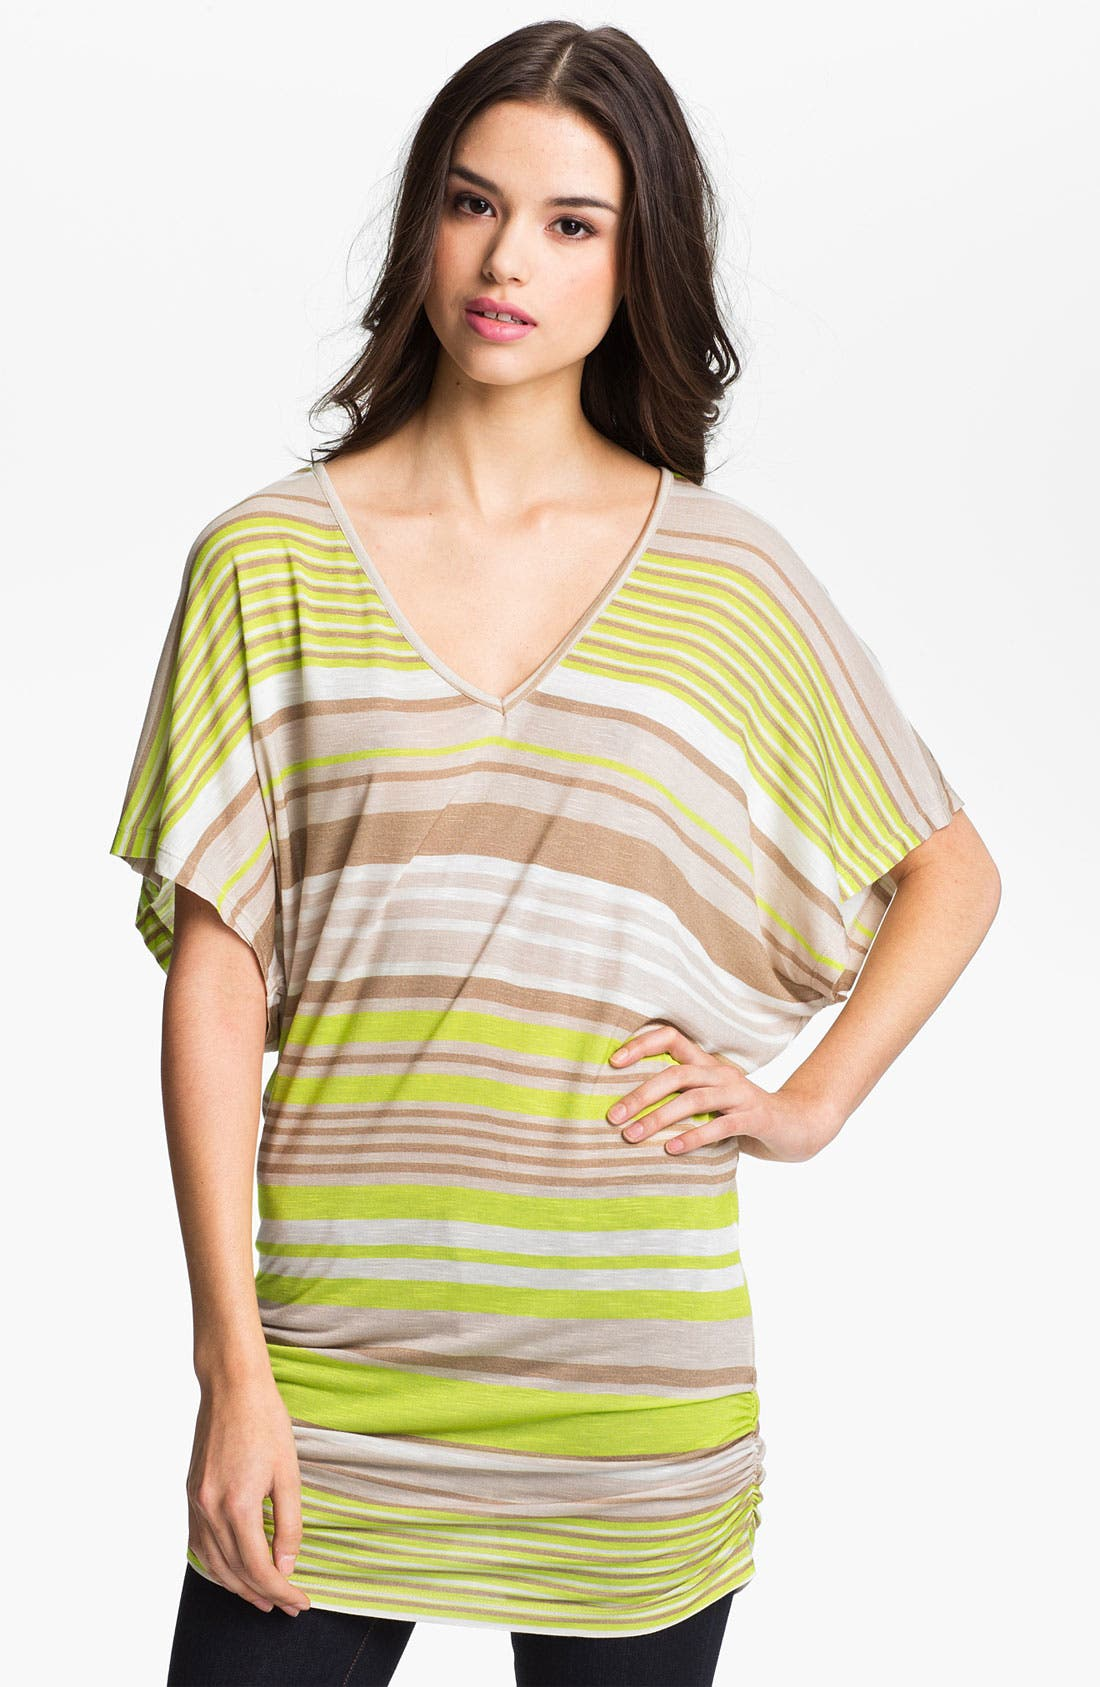 Alternate Image 1 Selected - Young, Fabulous & Broke 'Trish' Stripe Top